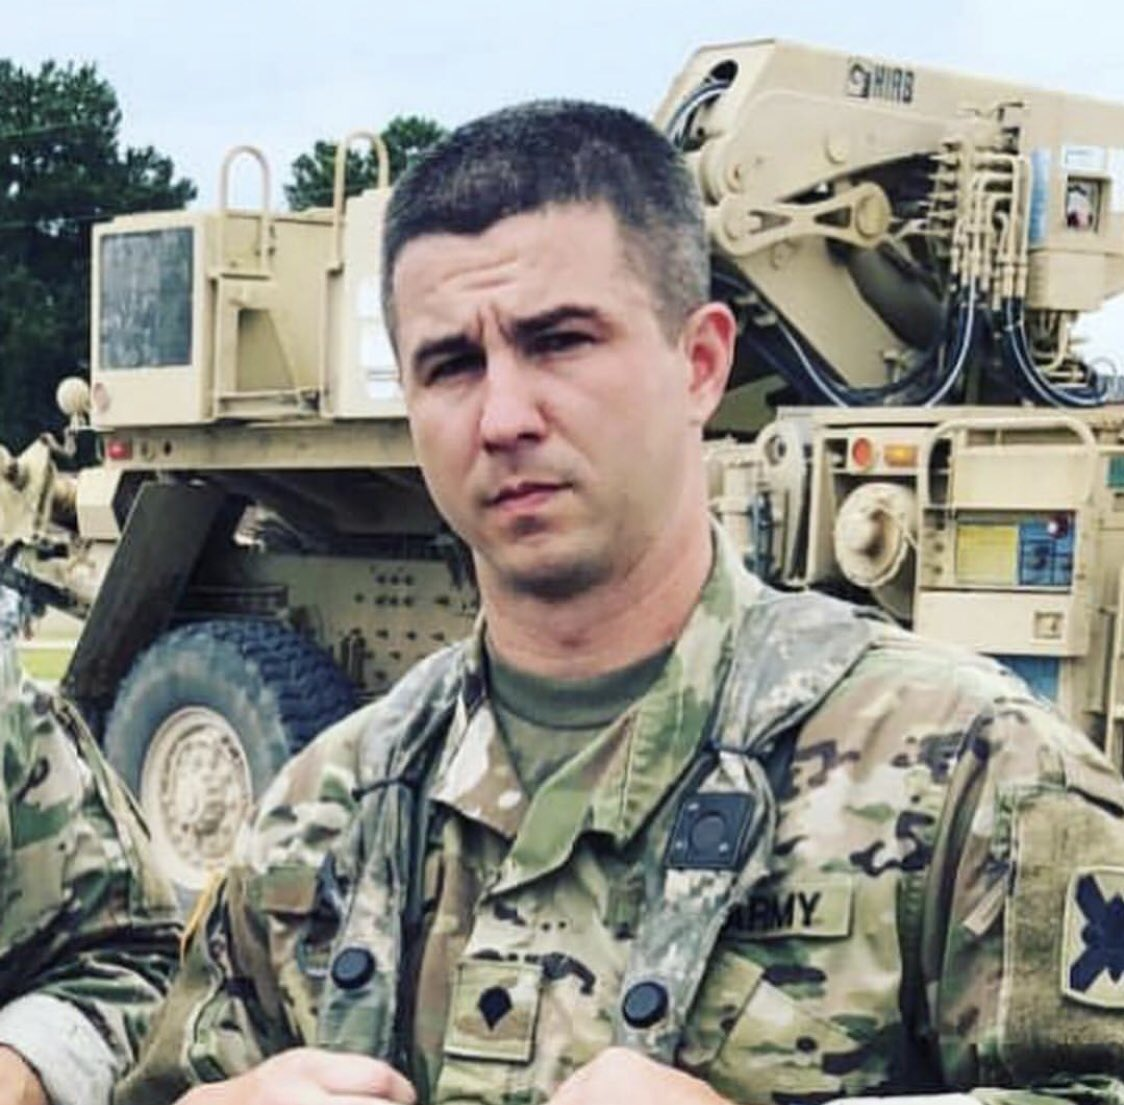 One of our own, Spc. Sean Tuder of the 1-173 IN BN, was killed Sunday in the course of his duty as a Mobile policeman. Our deepest sympathies, support, & prayers go to his family & brothers in arms. We are thankful for his service & hope to honor his legacy. #WeHaveTheWatch <br>http://pic.twitter.com/kWXF6uOCud